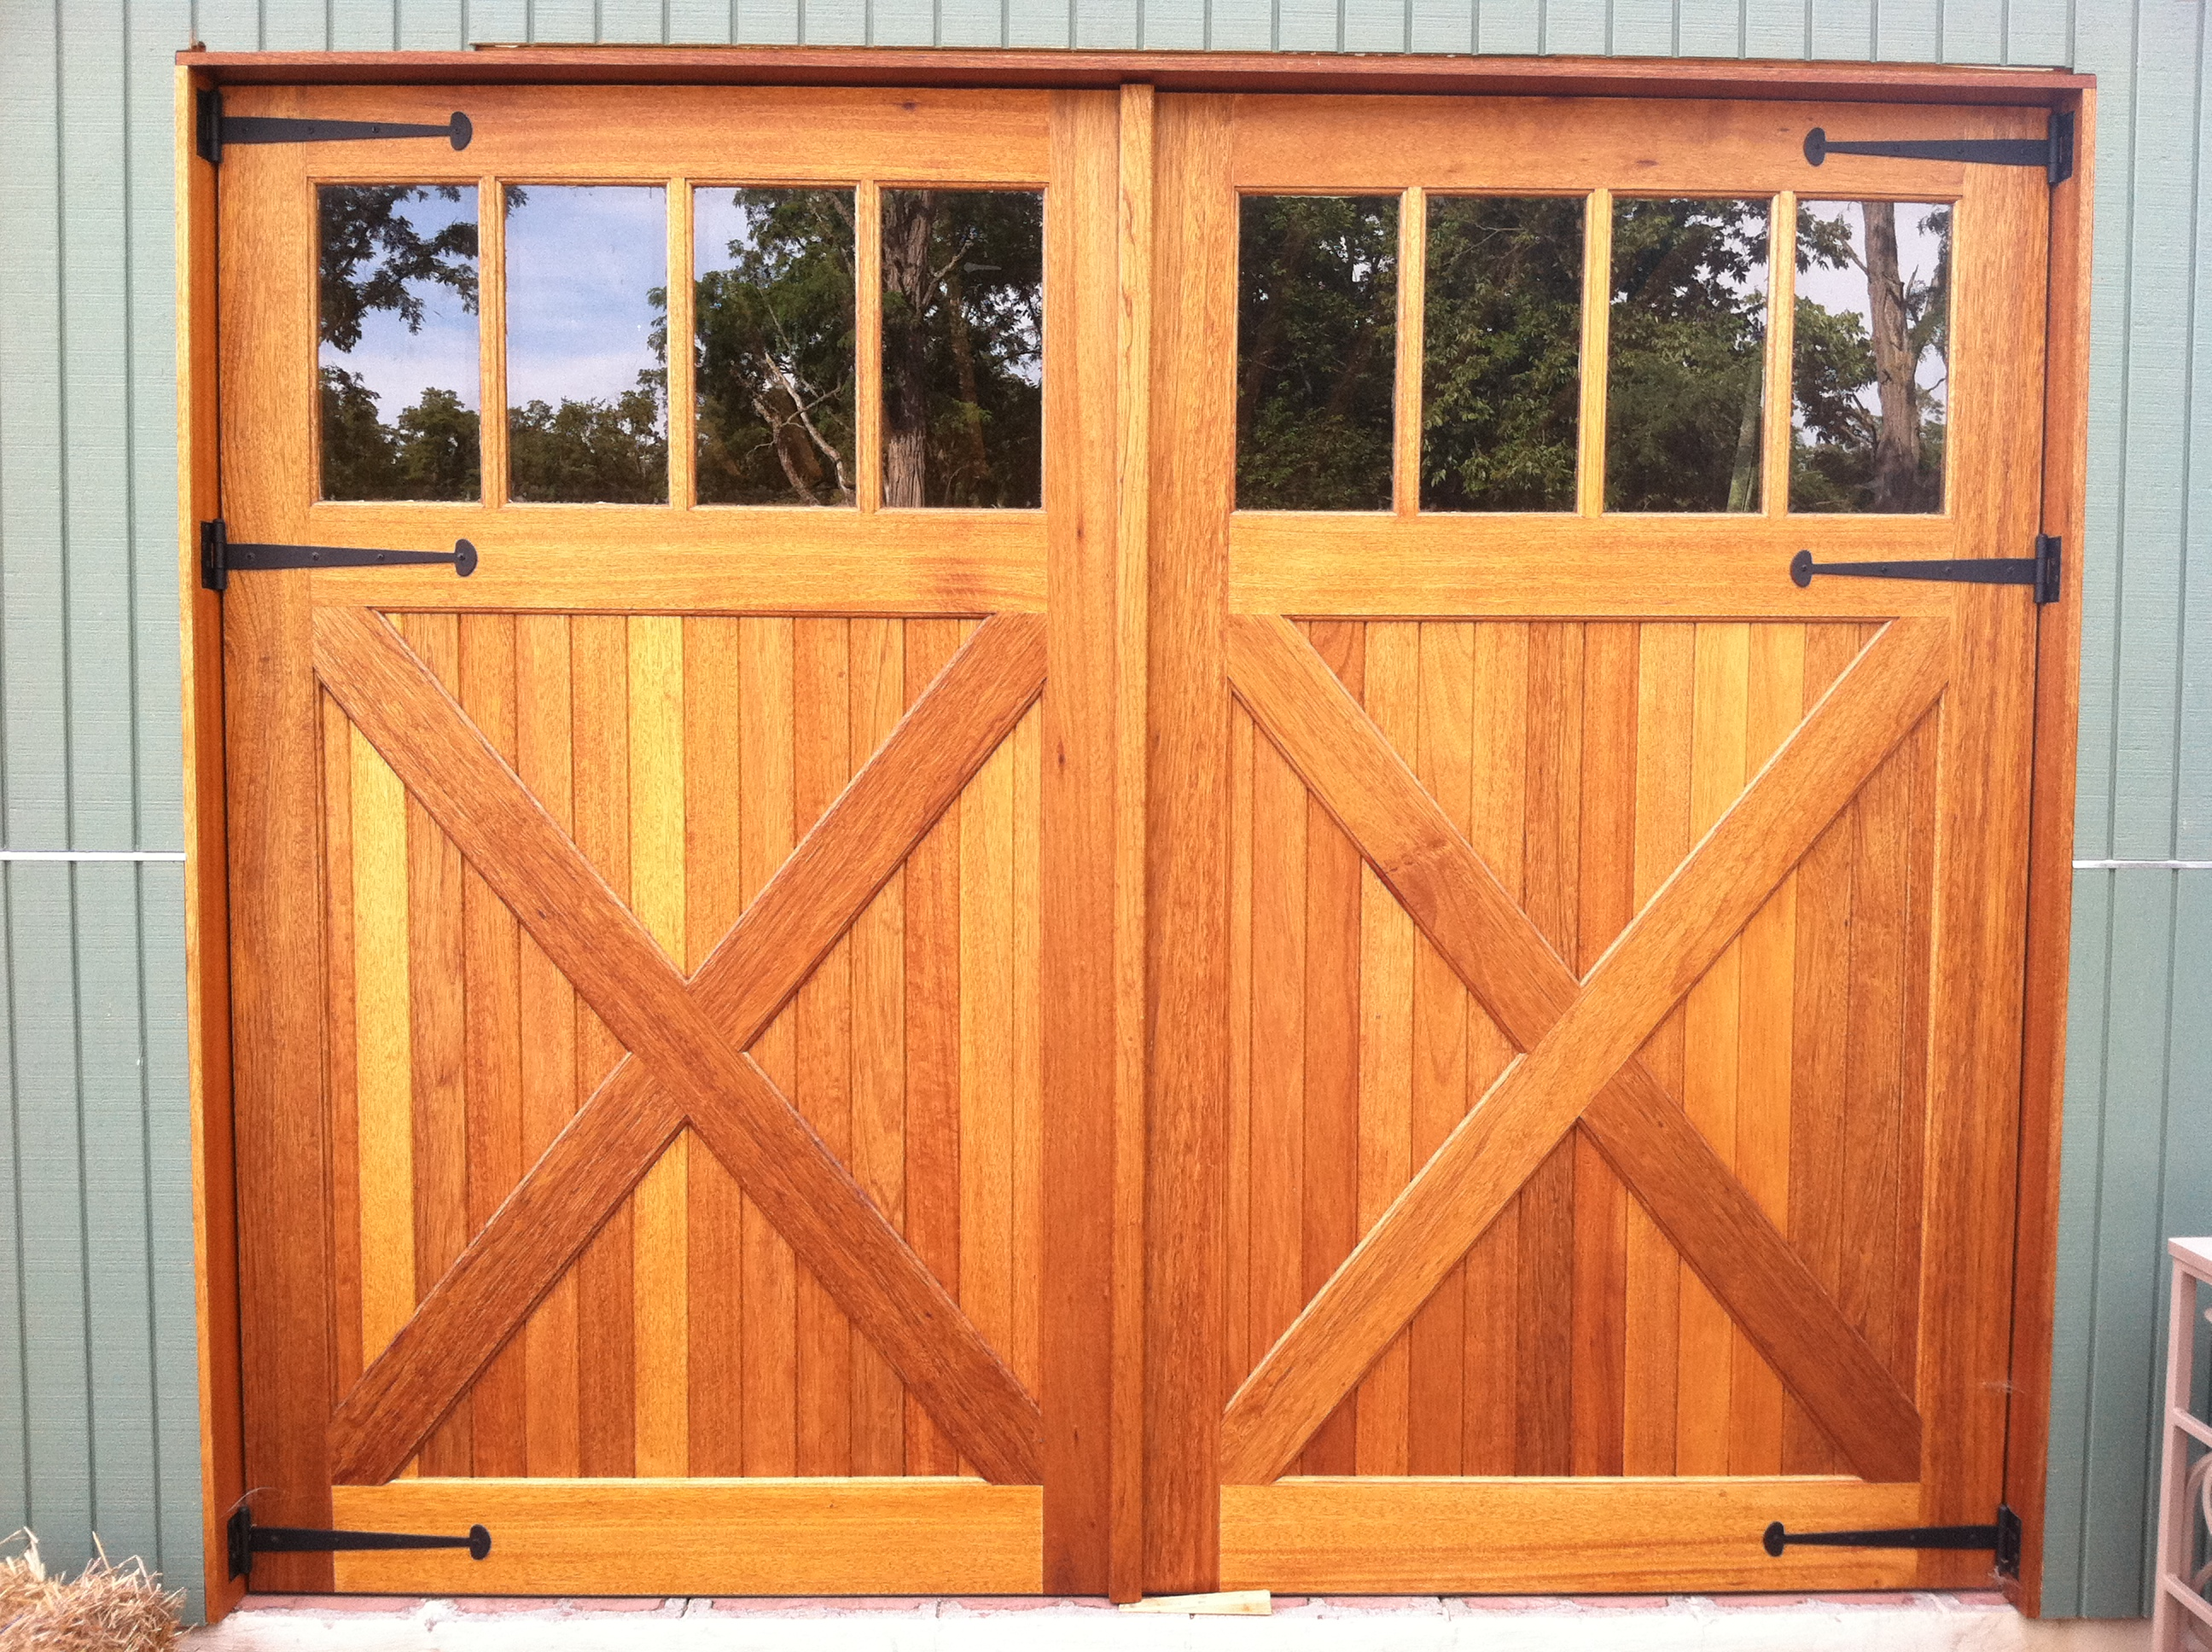 Carriage garage doors - Carriage Garage Doors 40